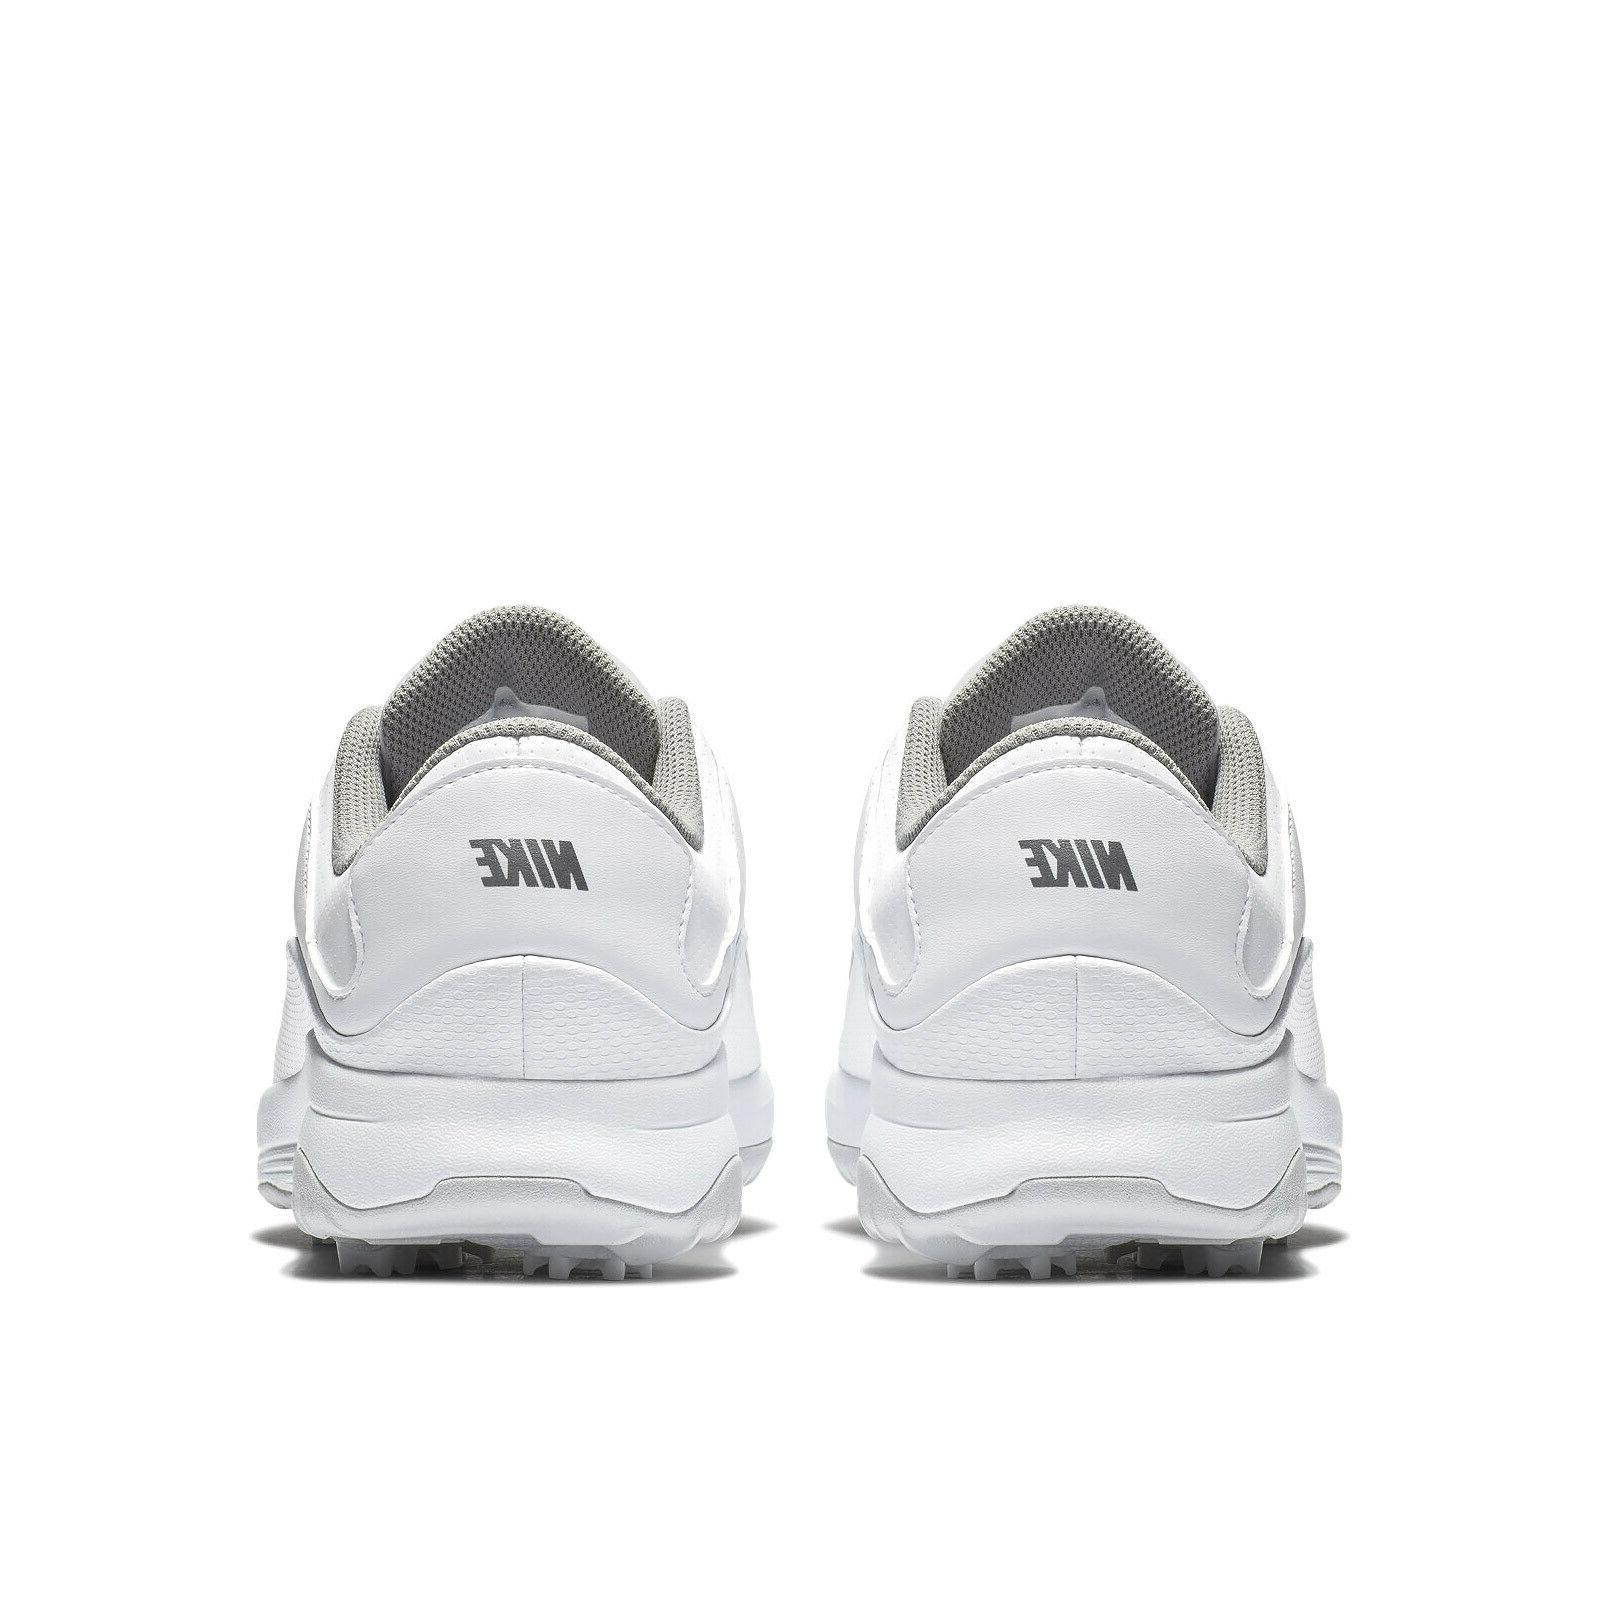 NIKE MENS SHOES WIDE WIDTH, White,